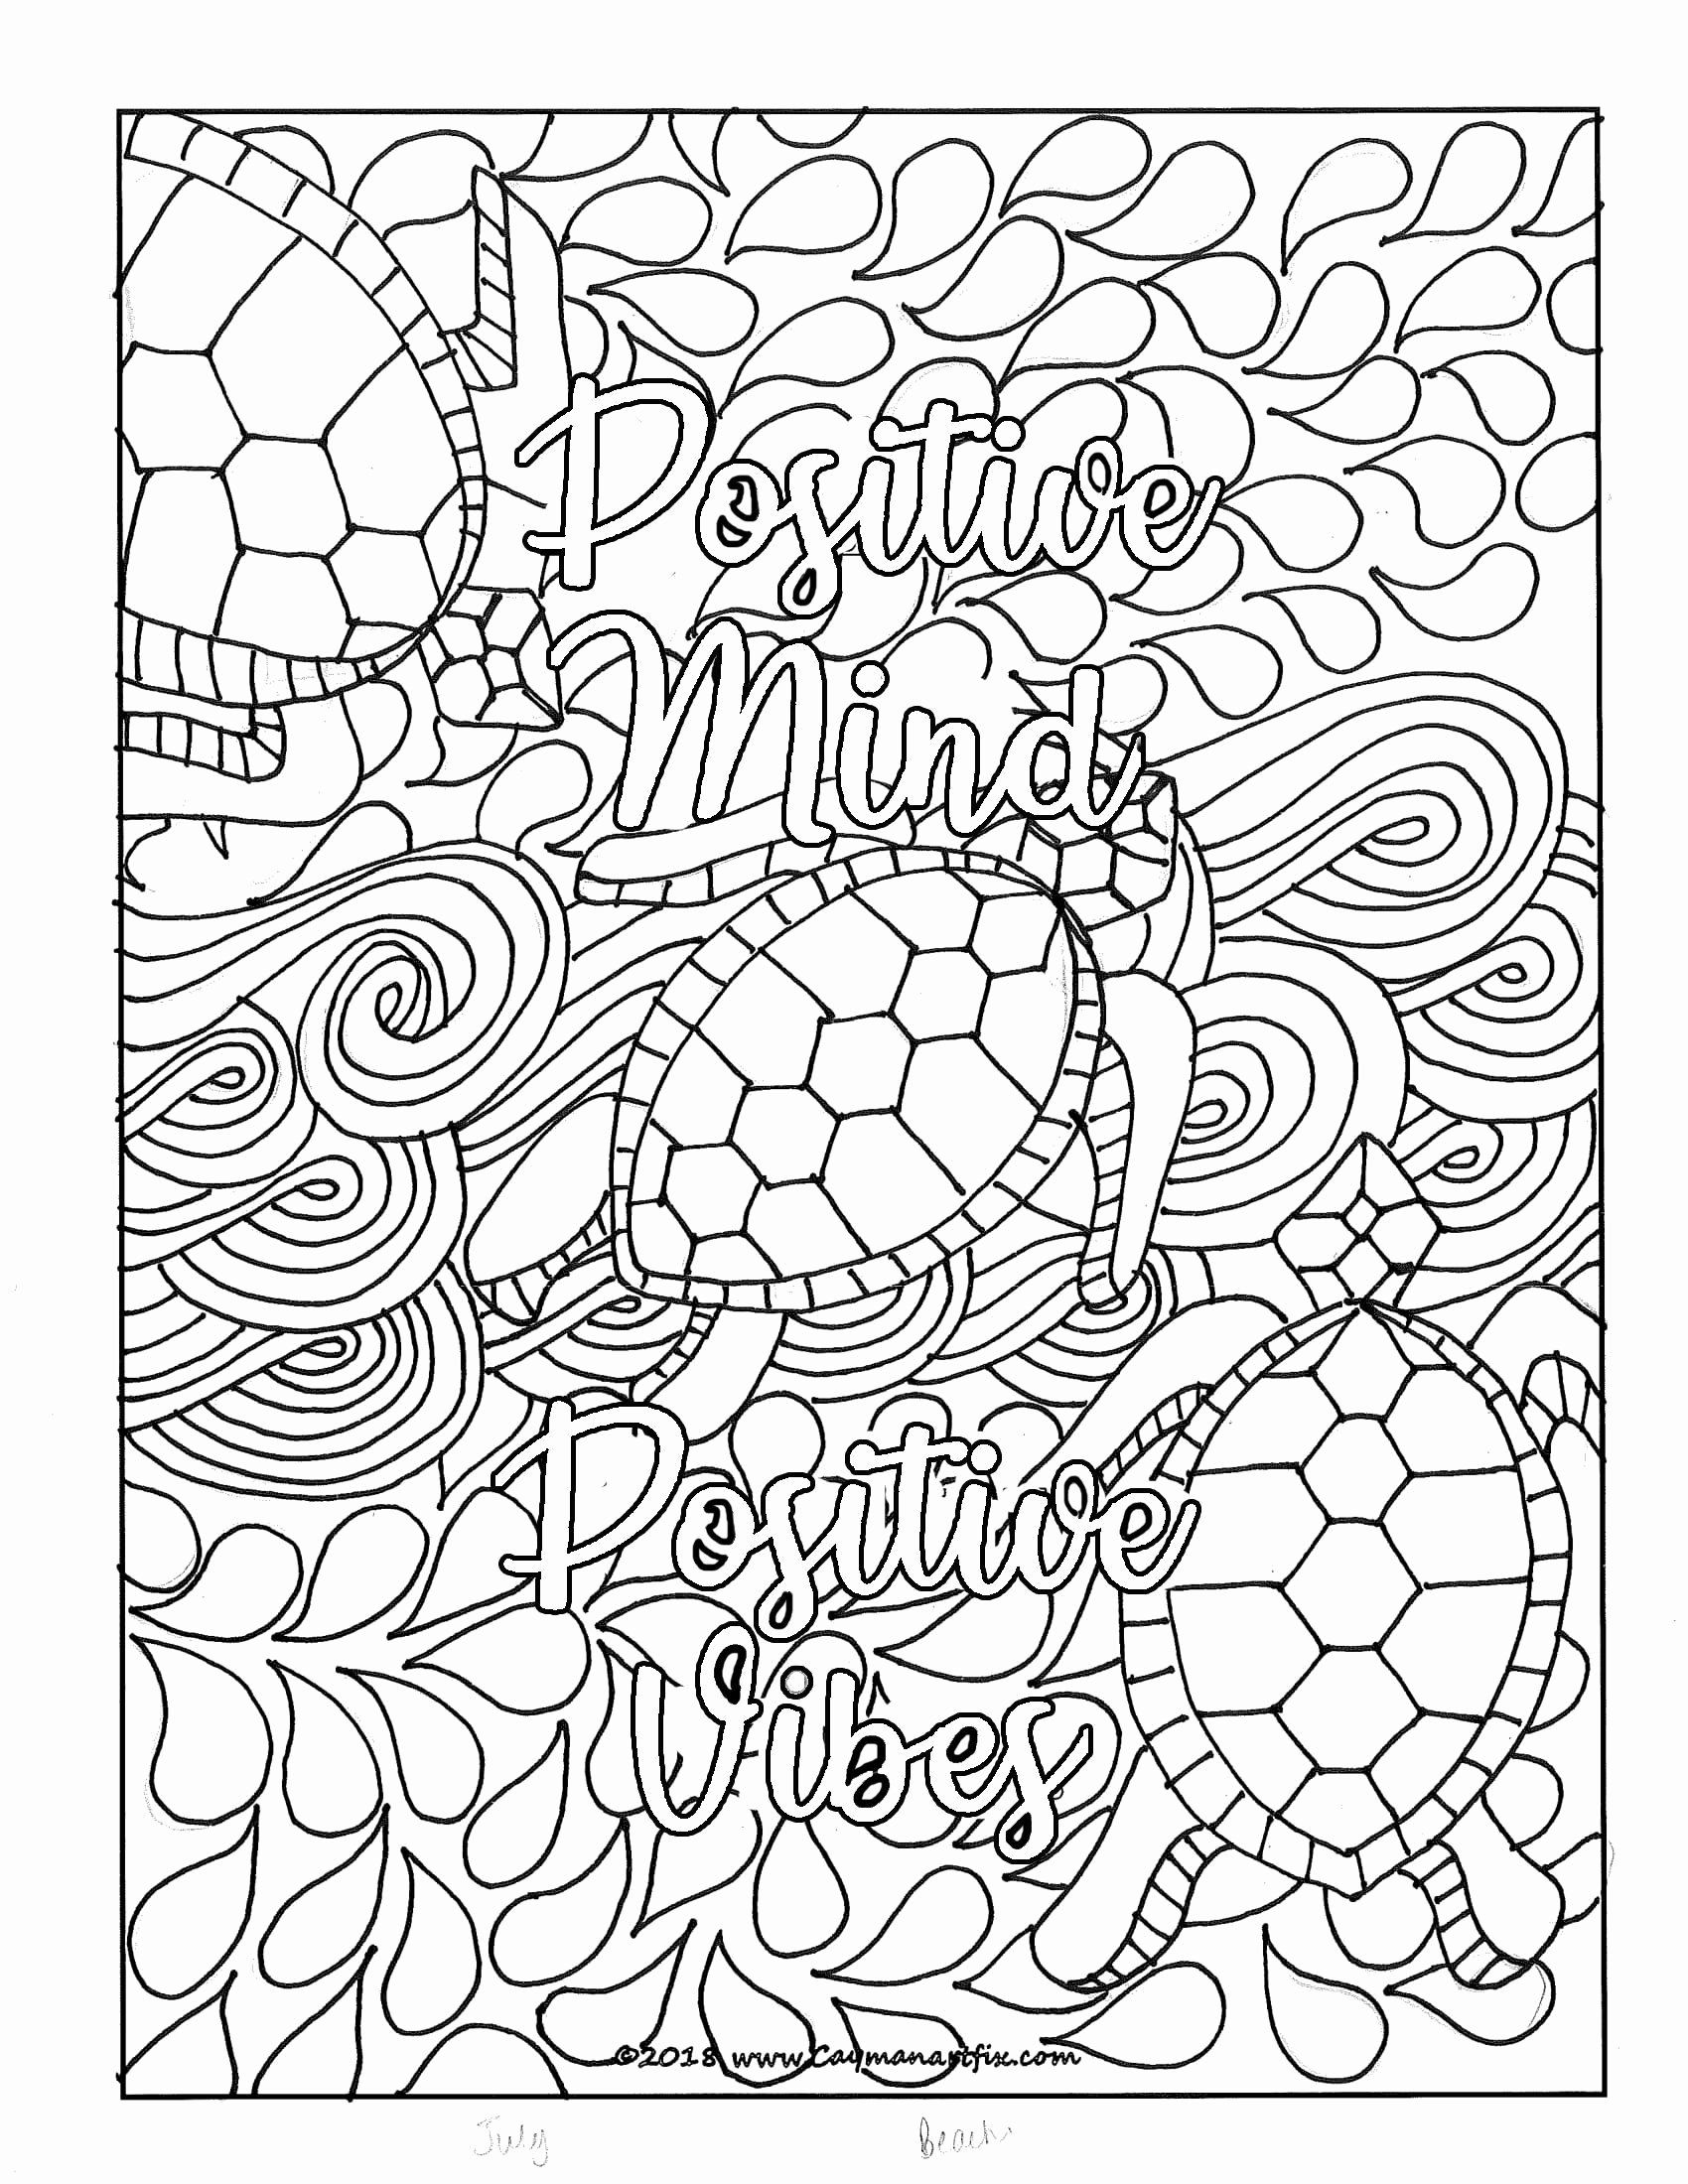 Pin On Popular Design Coloring Pages